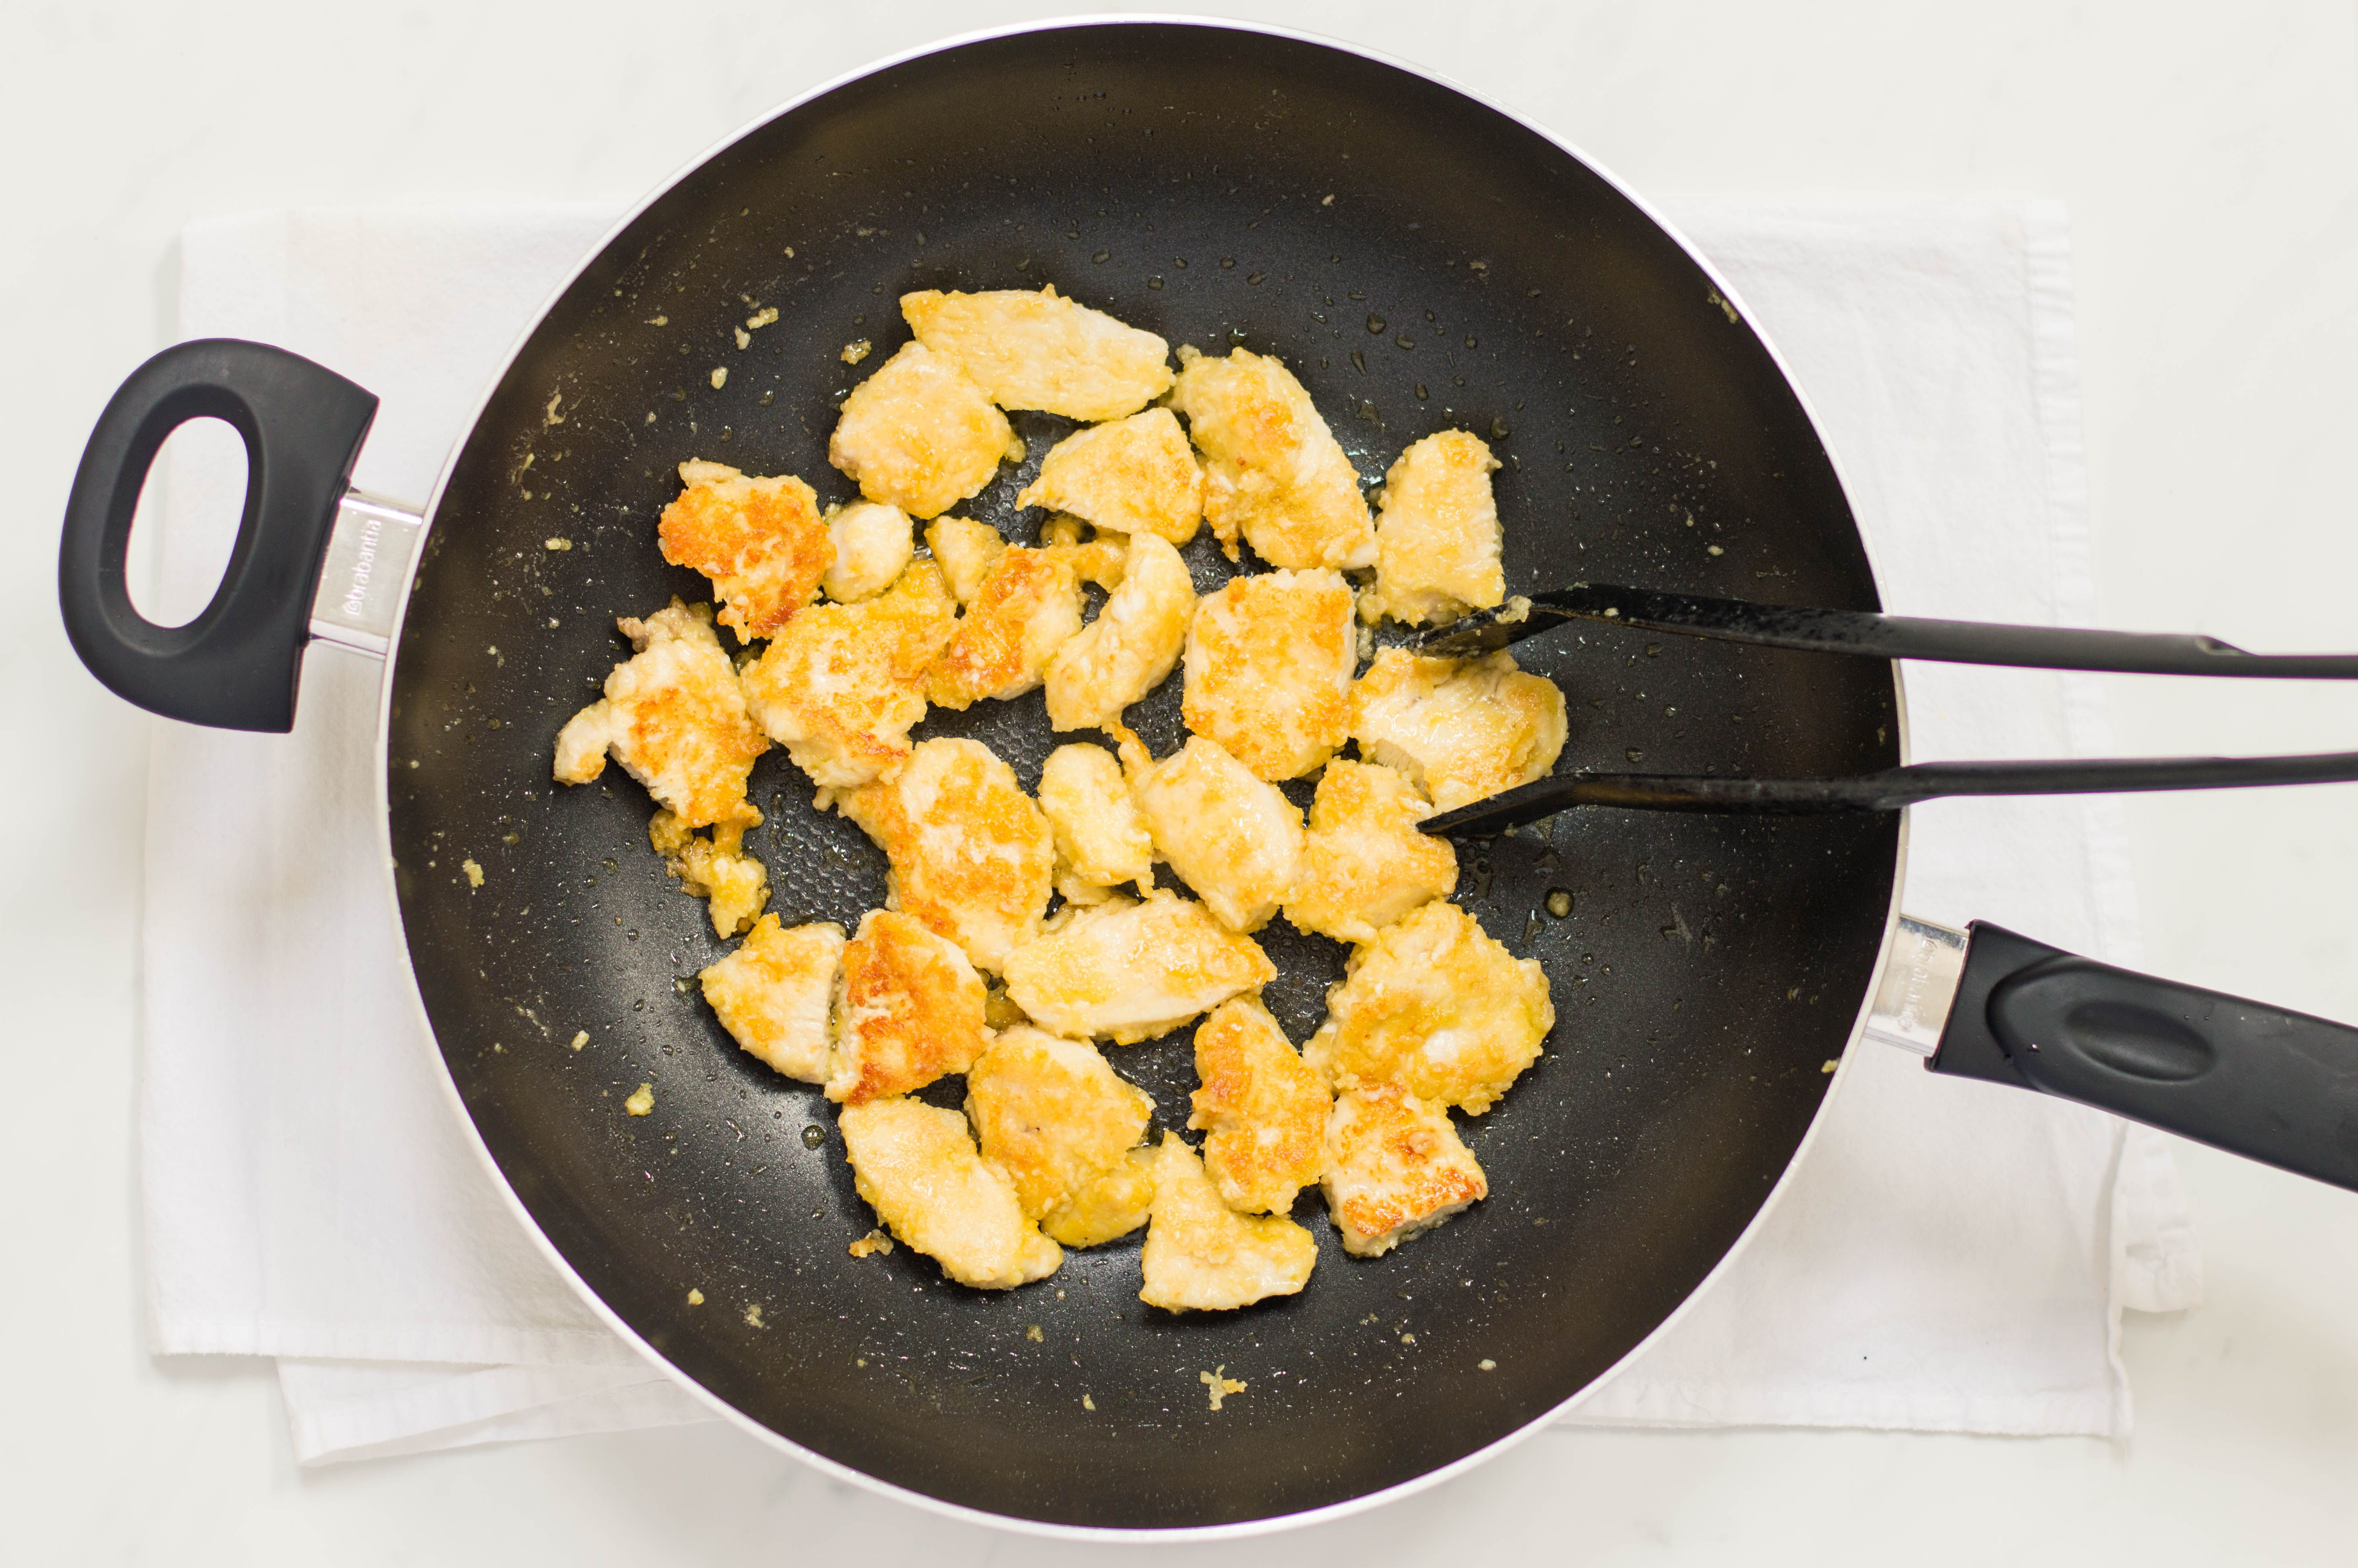 Chicken cooked in a wok